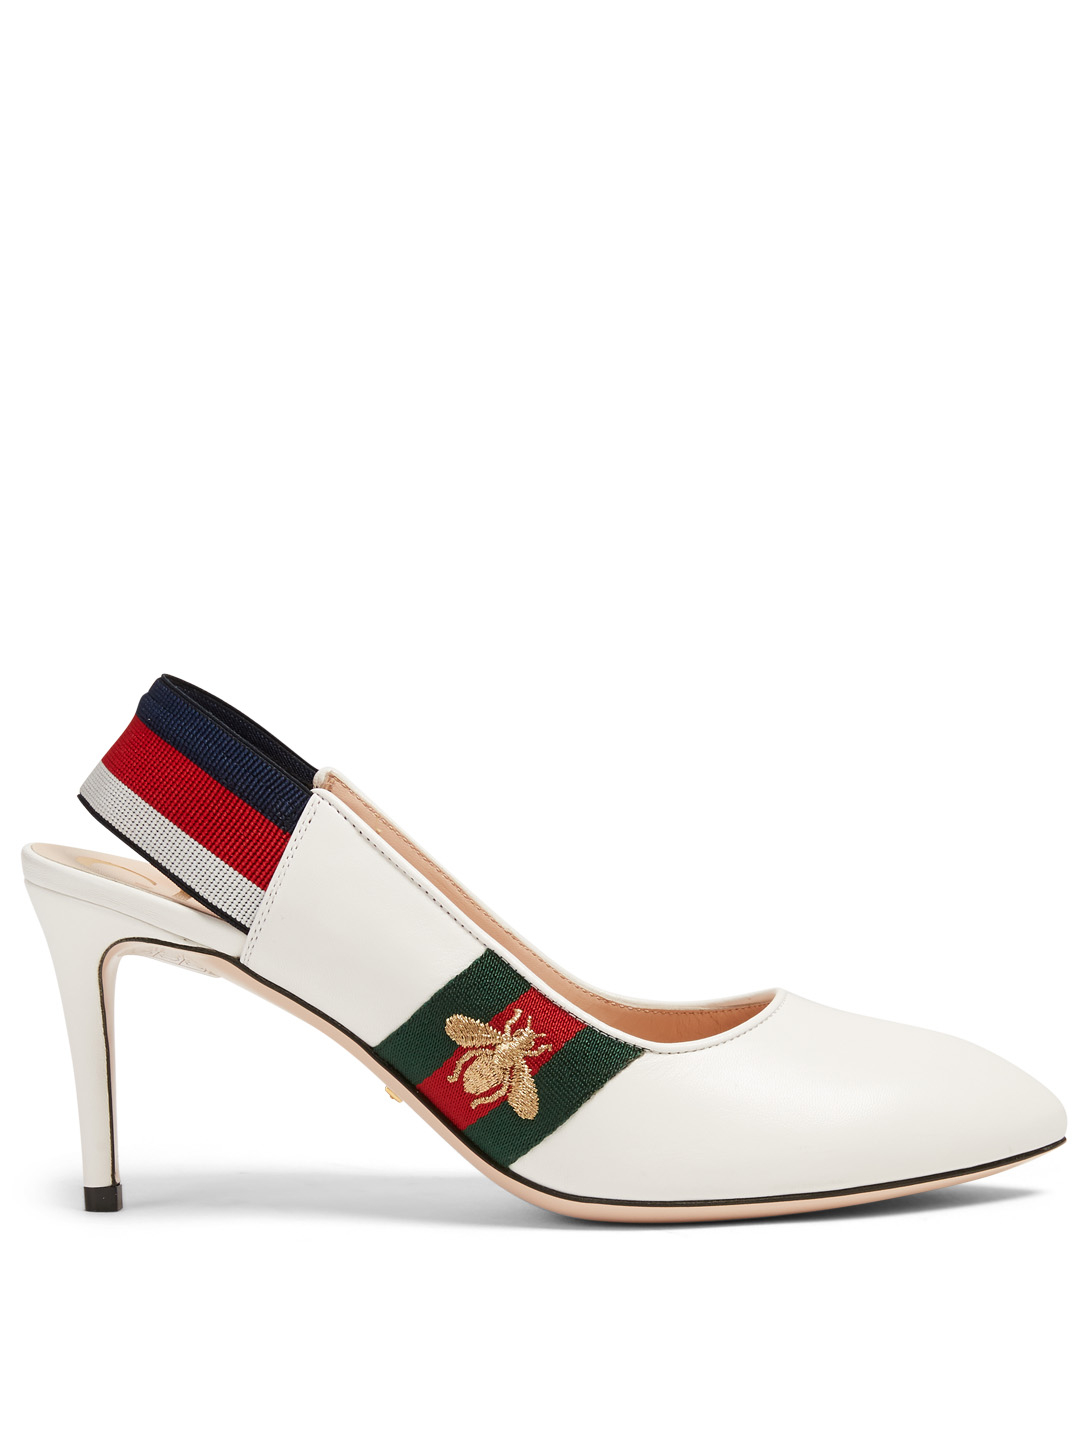 GUCCI Sylvie Leather Slingback Pumps Womens White